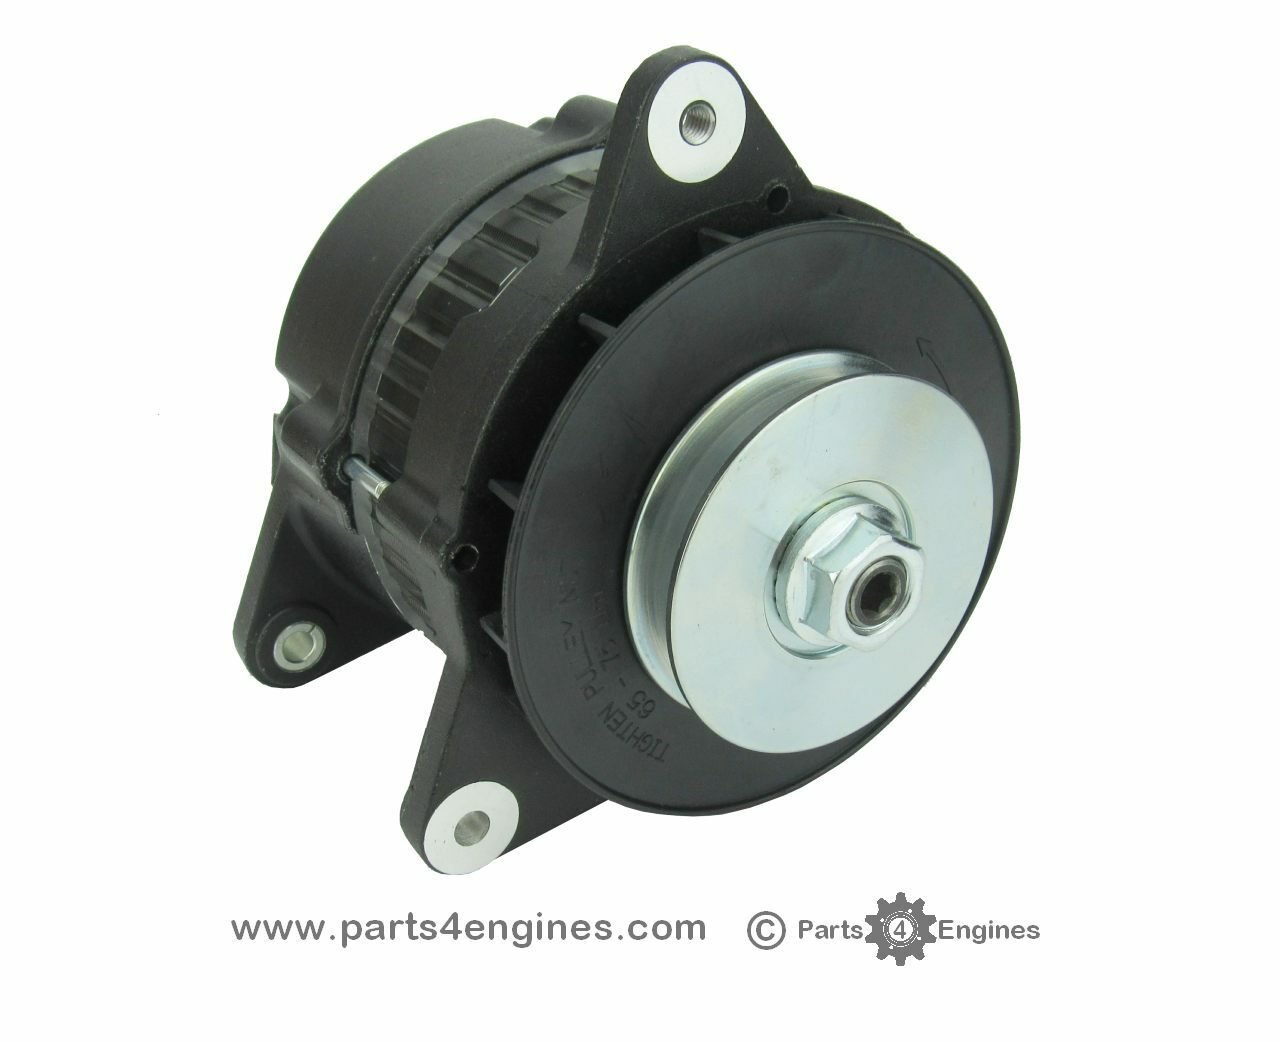 Perkins 4.108 Alternator high output isolated earth 90A from Parts4Engines.com